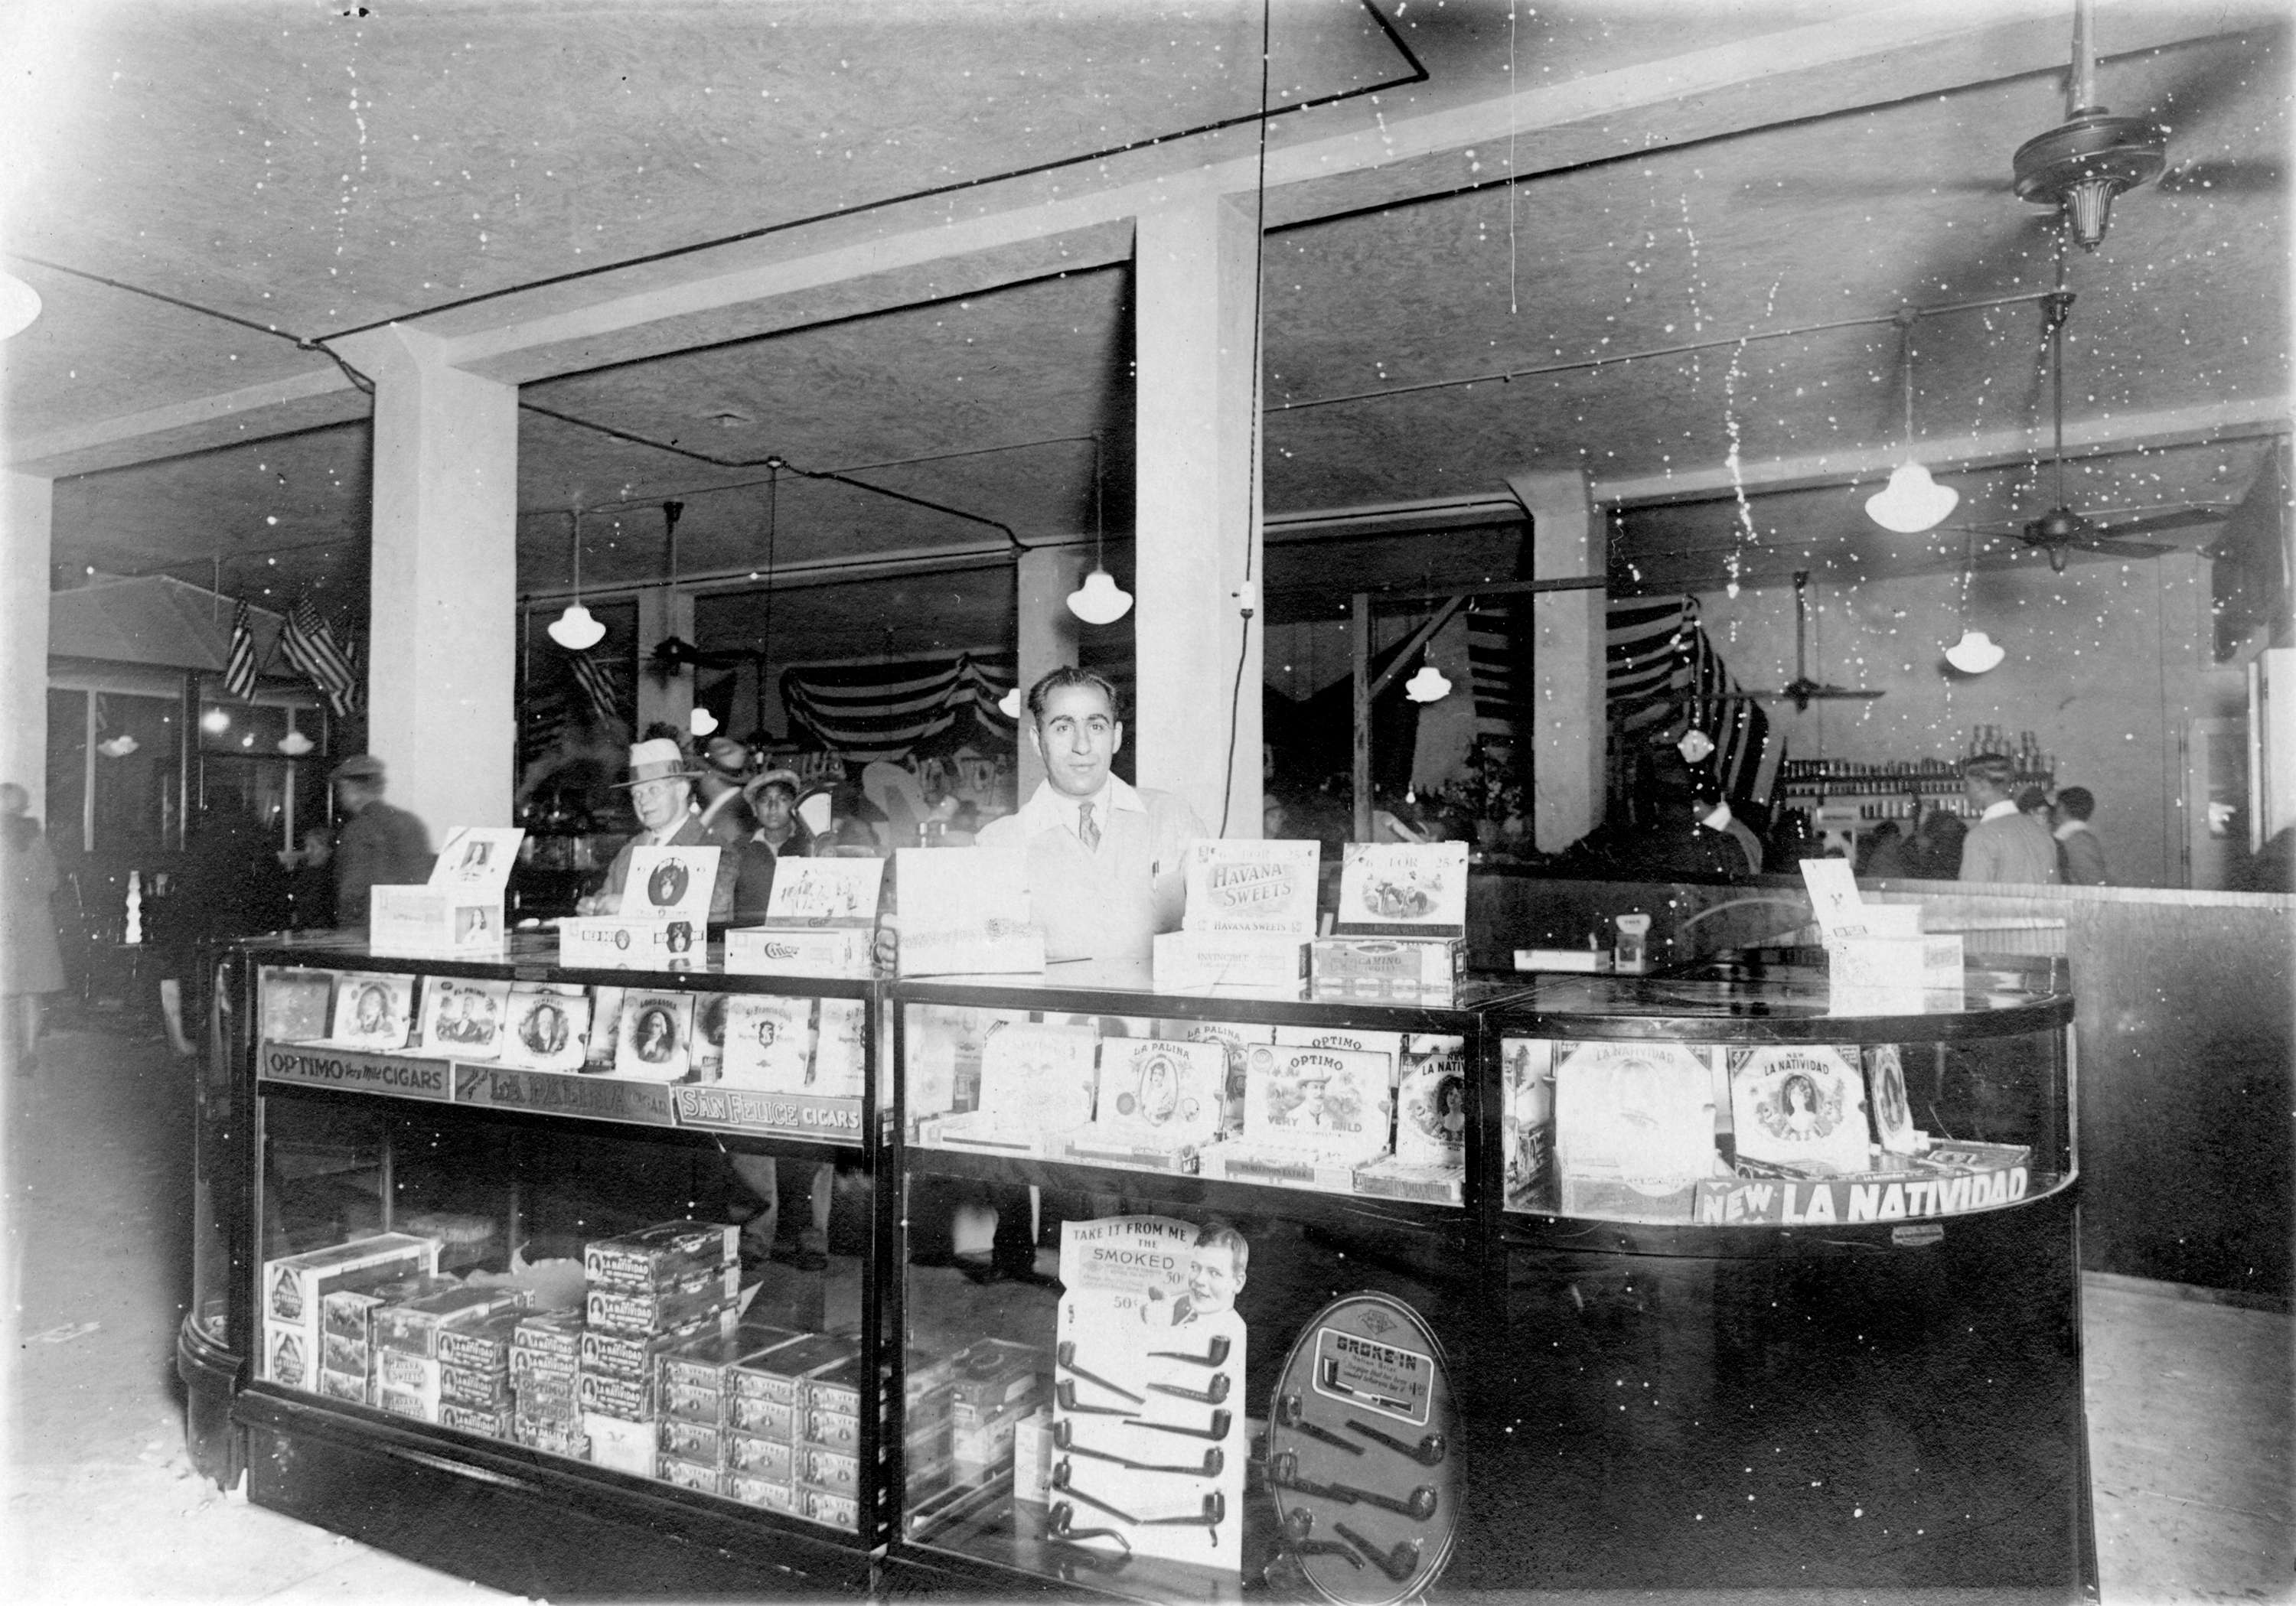 A cigar concession stand inside Woodward's Department Store in the 1920s (Woodward's Stores Limited)